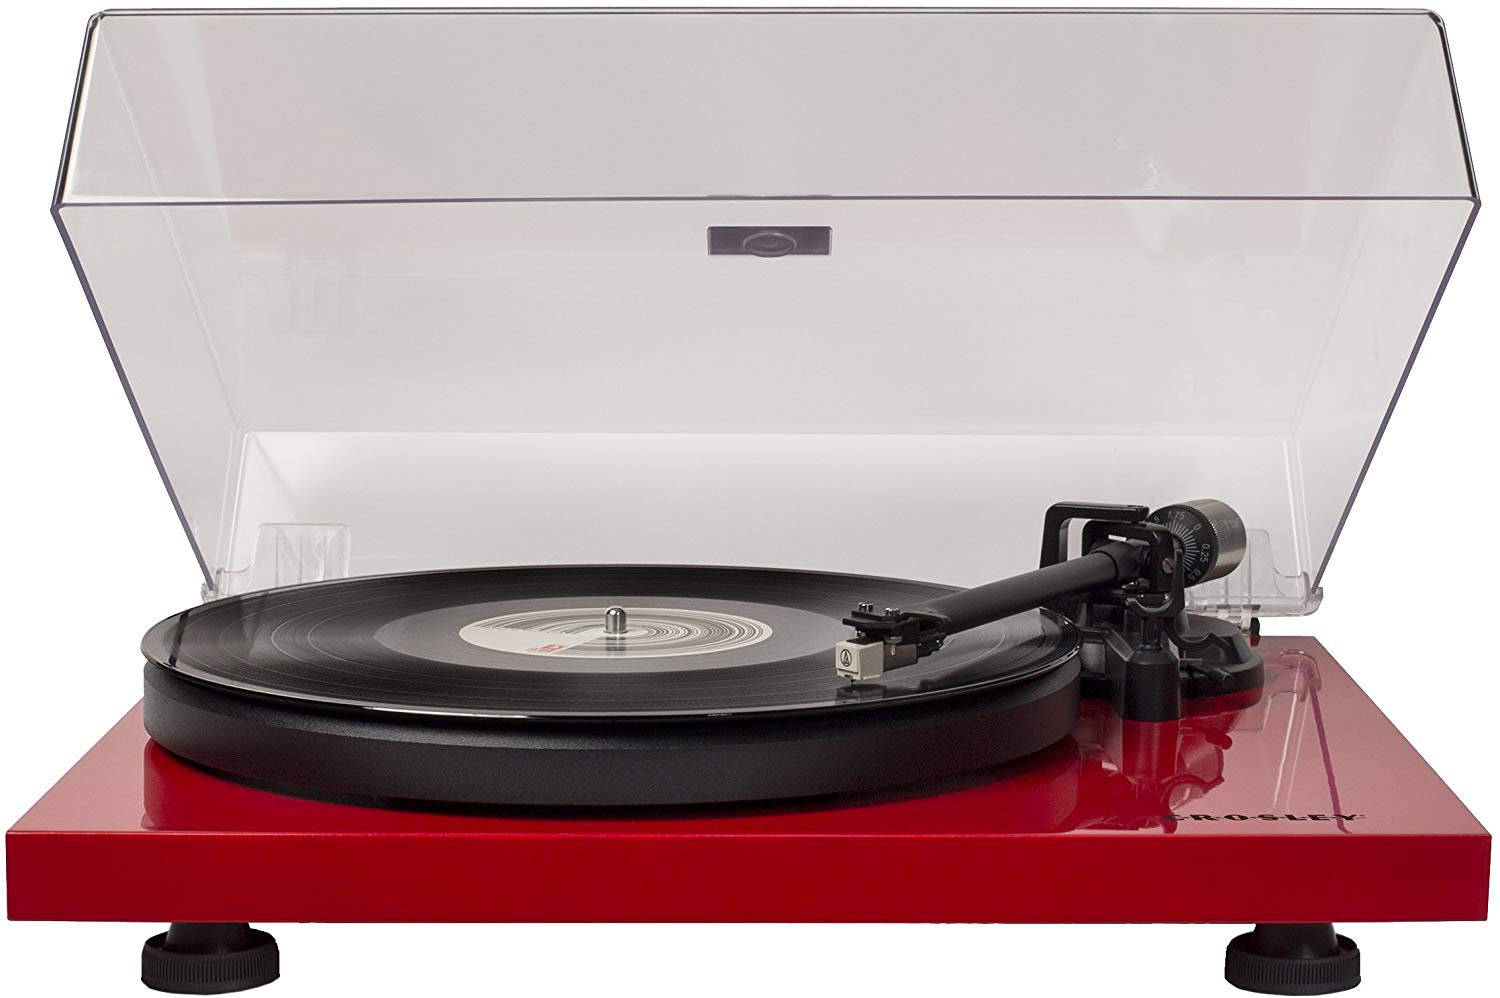 Crosley C6 Belt-Drive Turntable with Built-in Preamp and Adjustable Tone Arm, Red